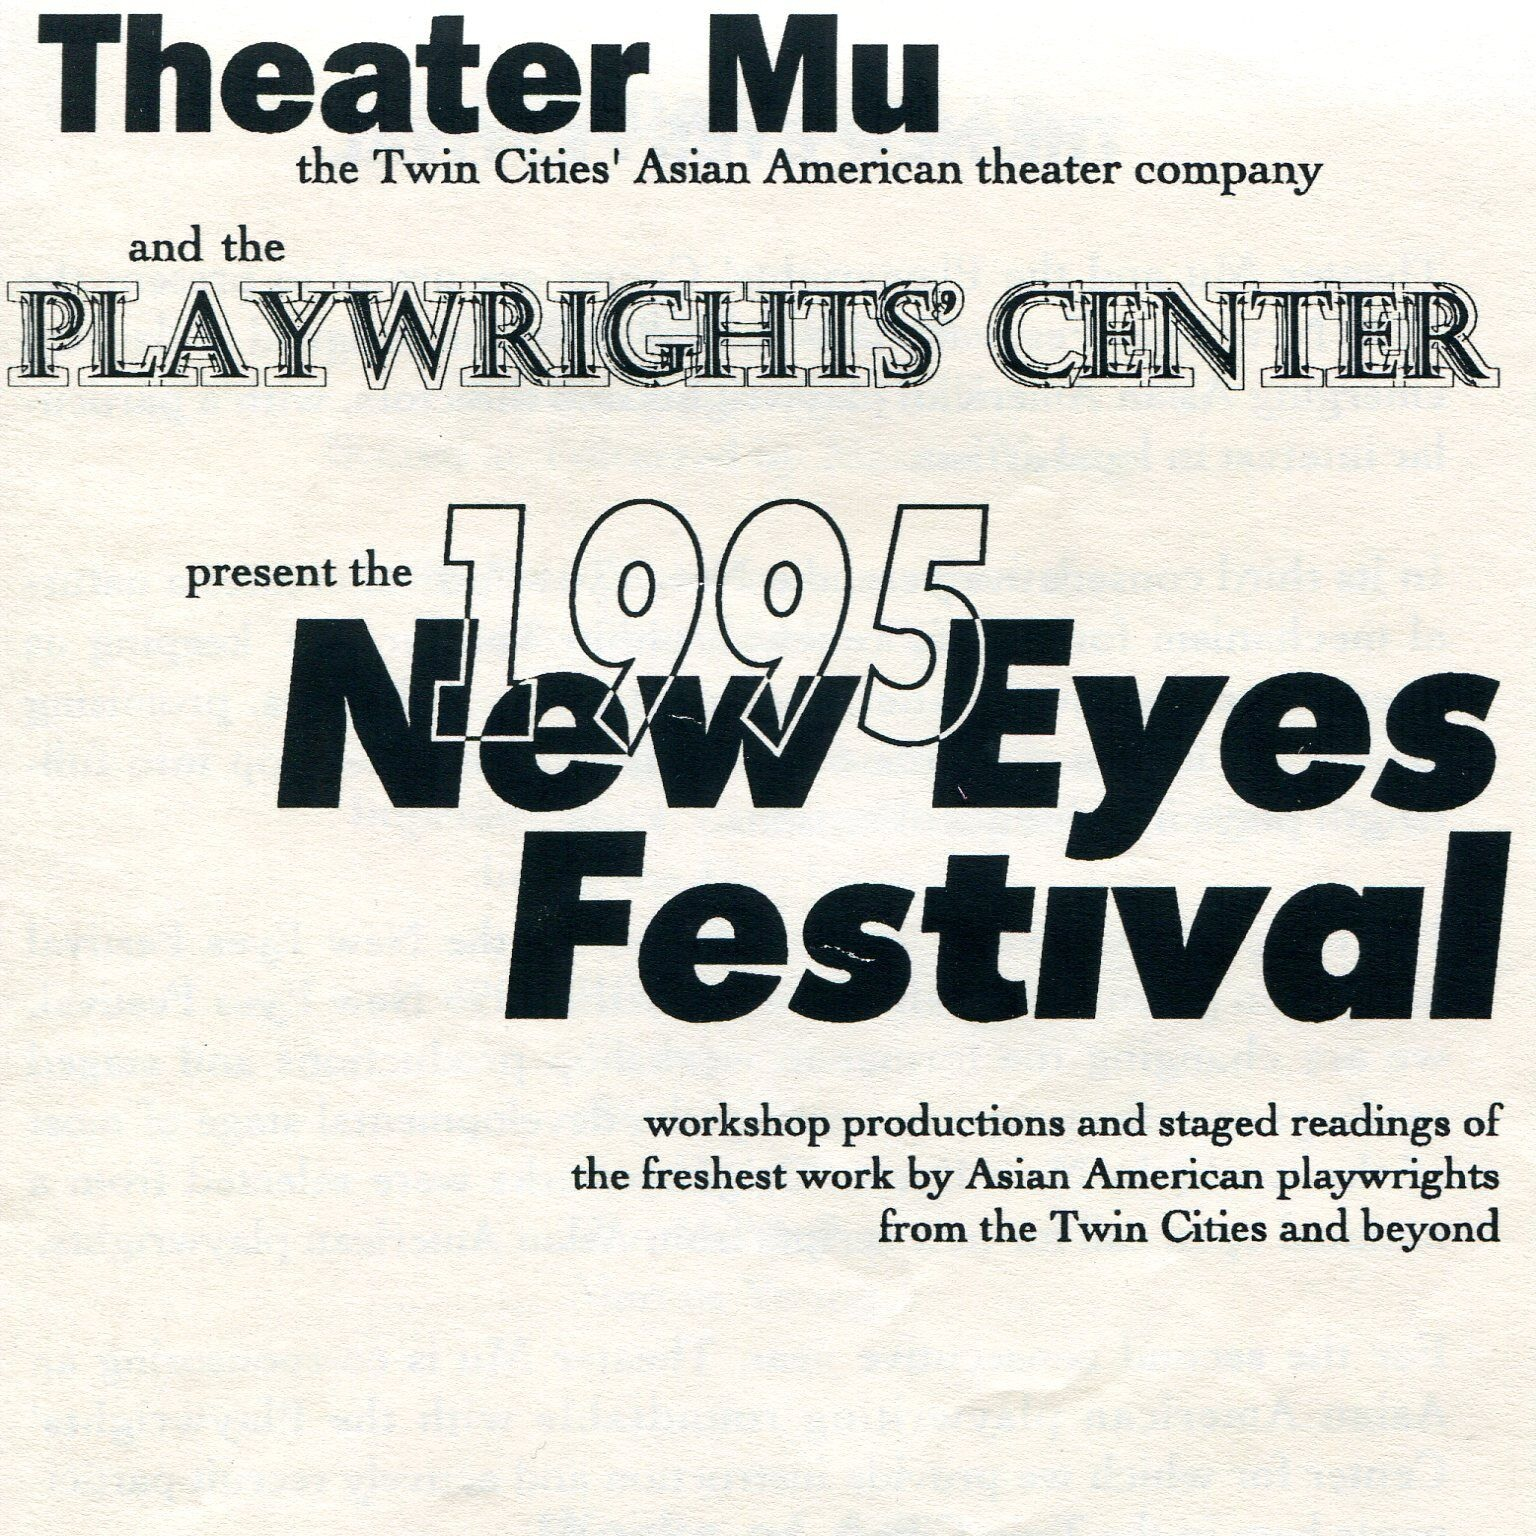 NEW EYES FESTIVAL 1995 - June 15 - 18, 1995